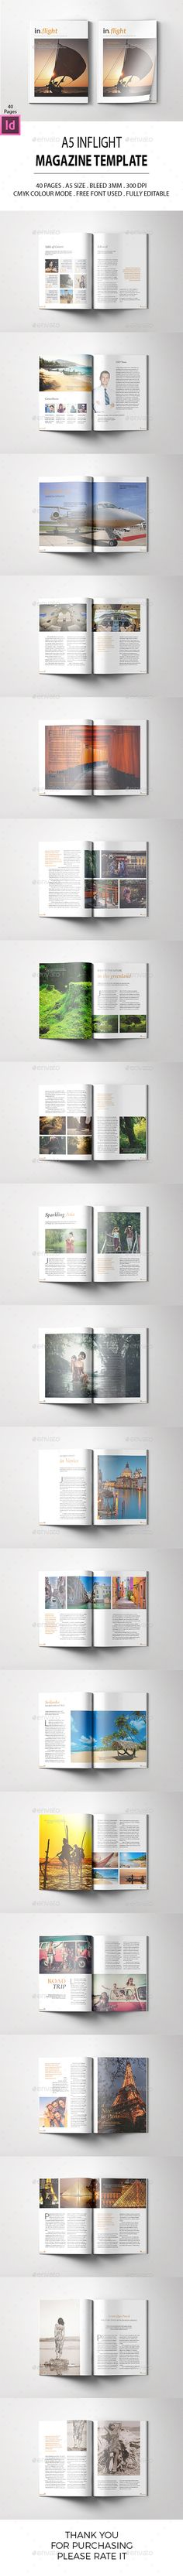 A5 Inflight Magazine Template InDesign INDD